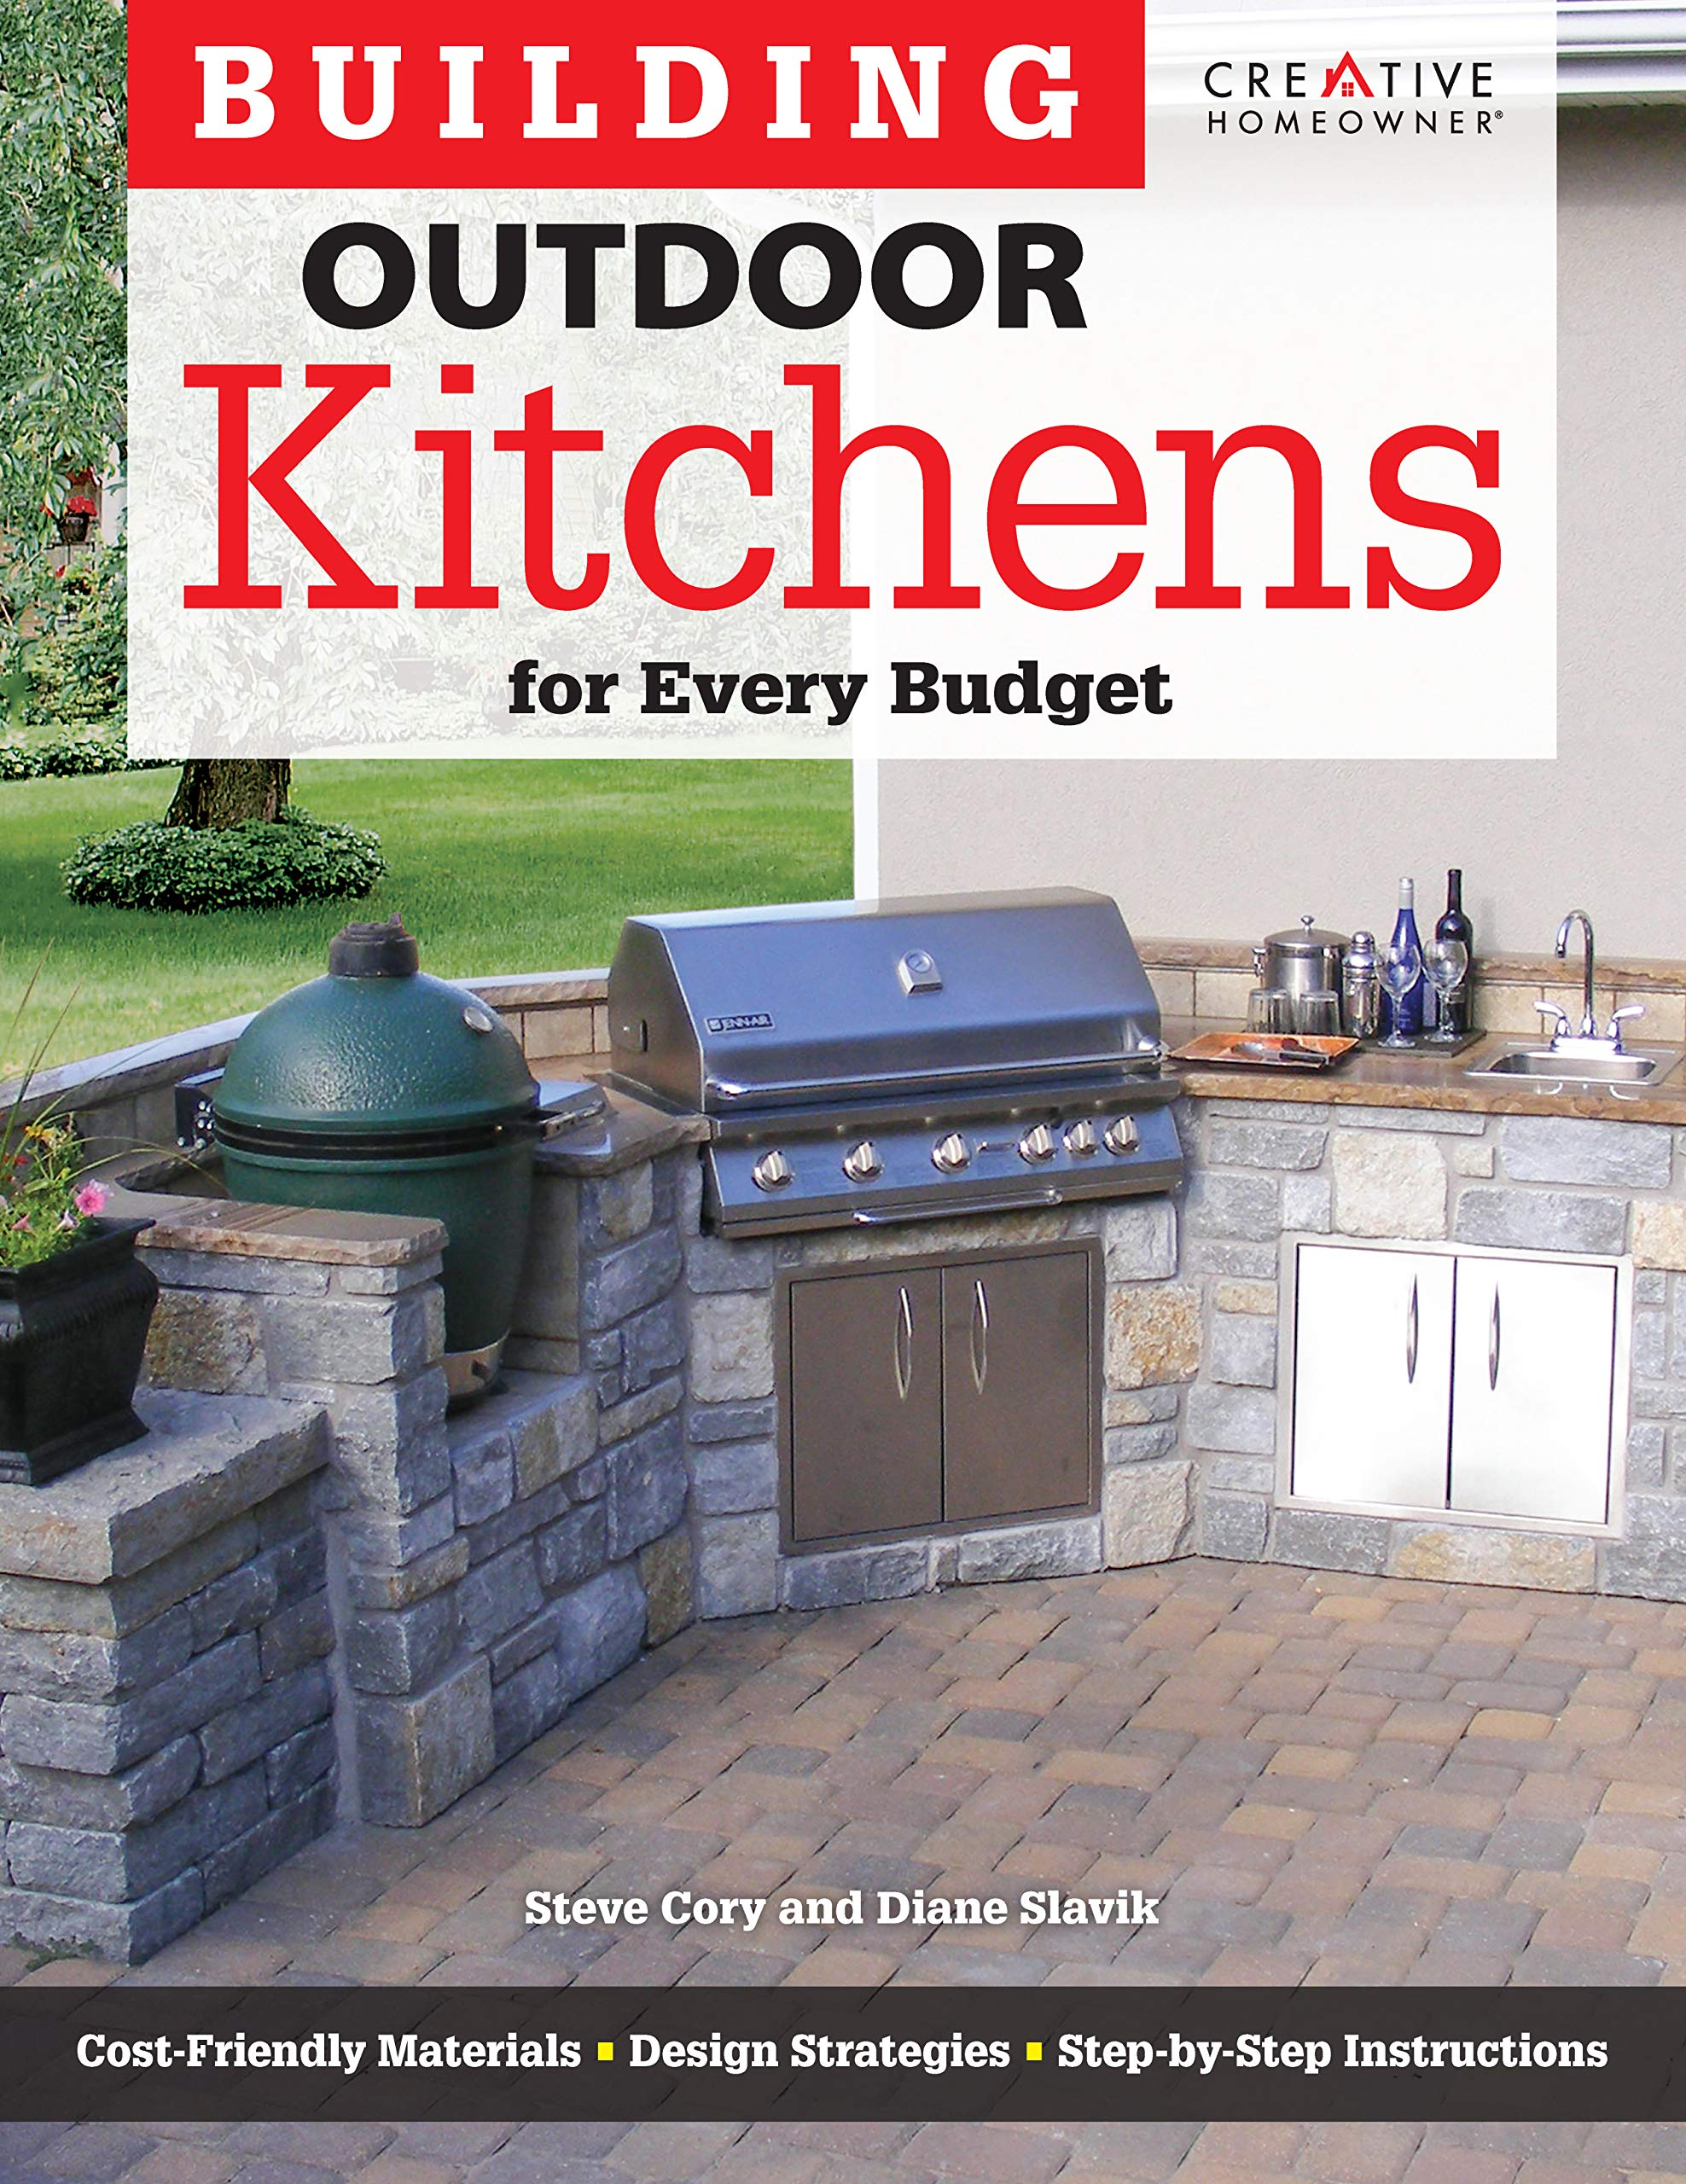 Building Outdoor Kitchens For Every Budget Creative Homeowner Diy Instructions And Over 300 Photos To Bring Attractive Functional Kitchens Within Reach Of Budget Conscious Homeowners Cory Steve Home Improvement Kitchen How To Slavik Diane